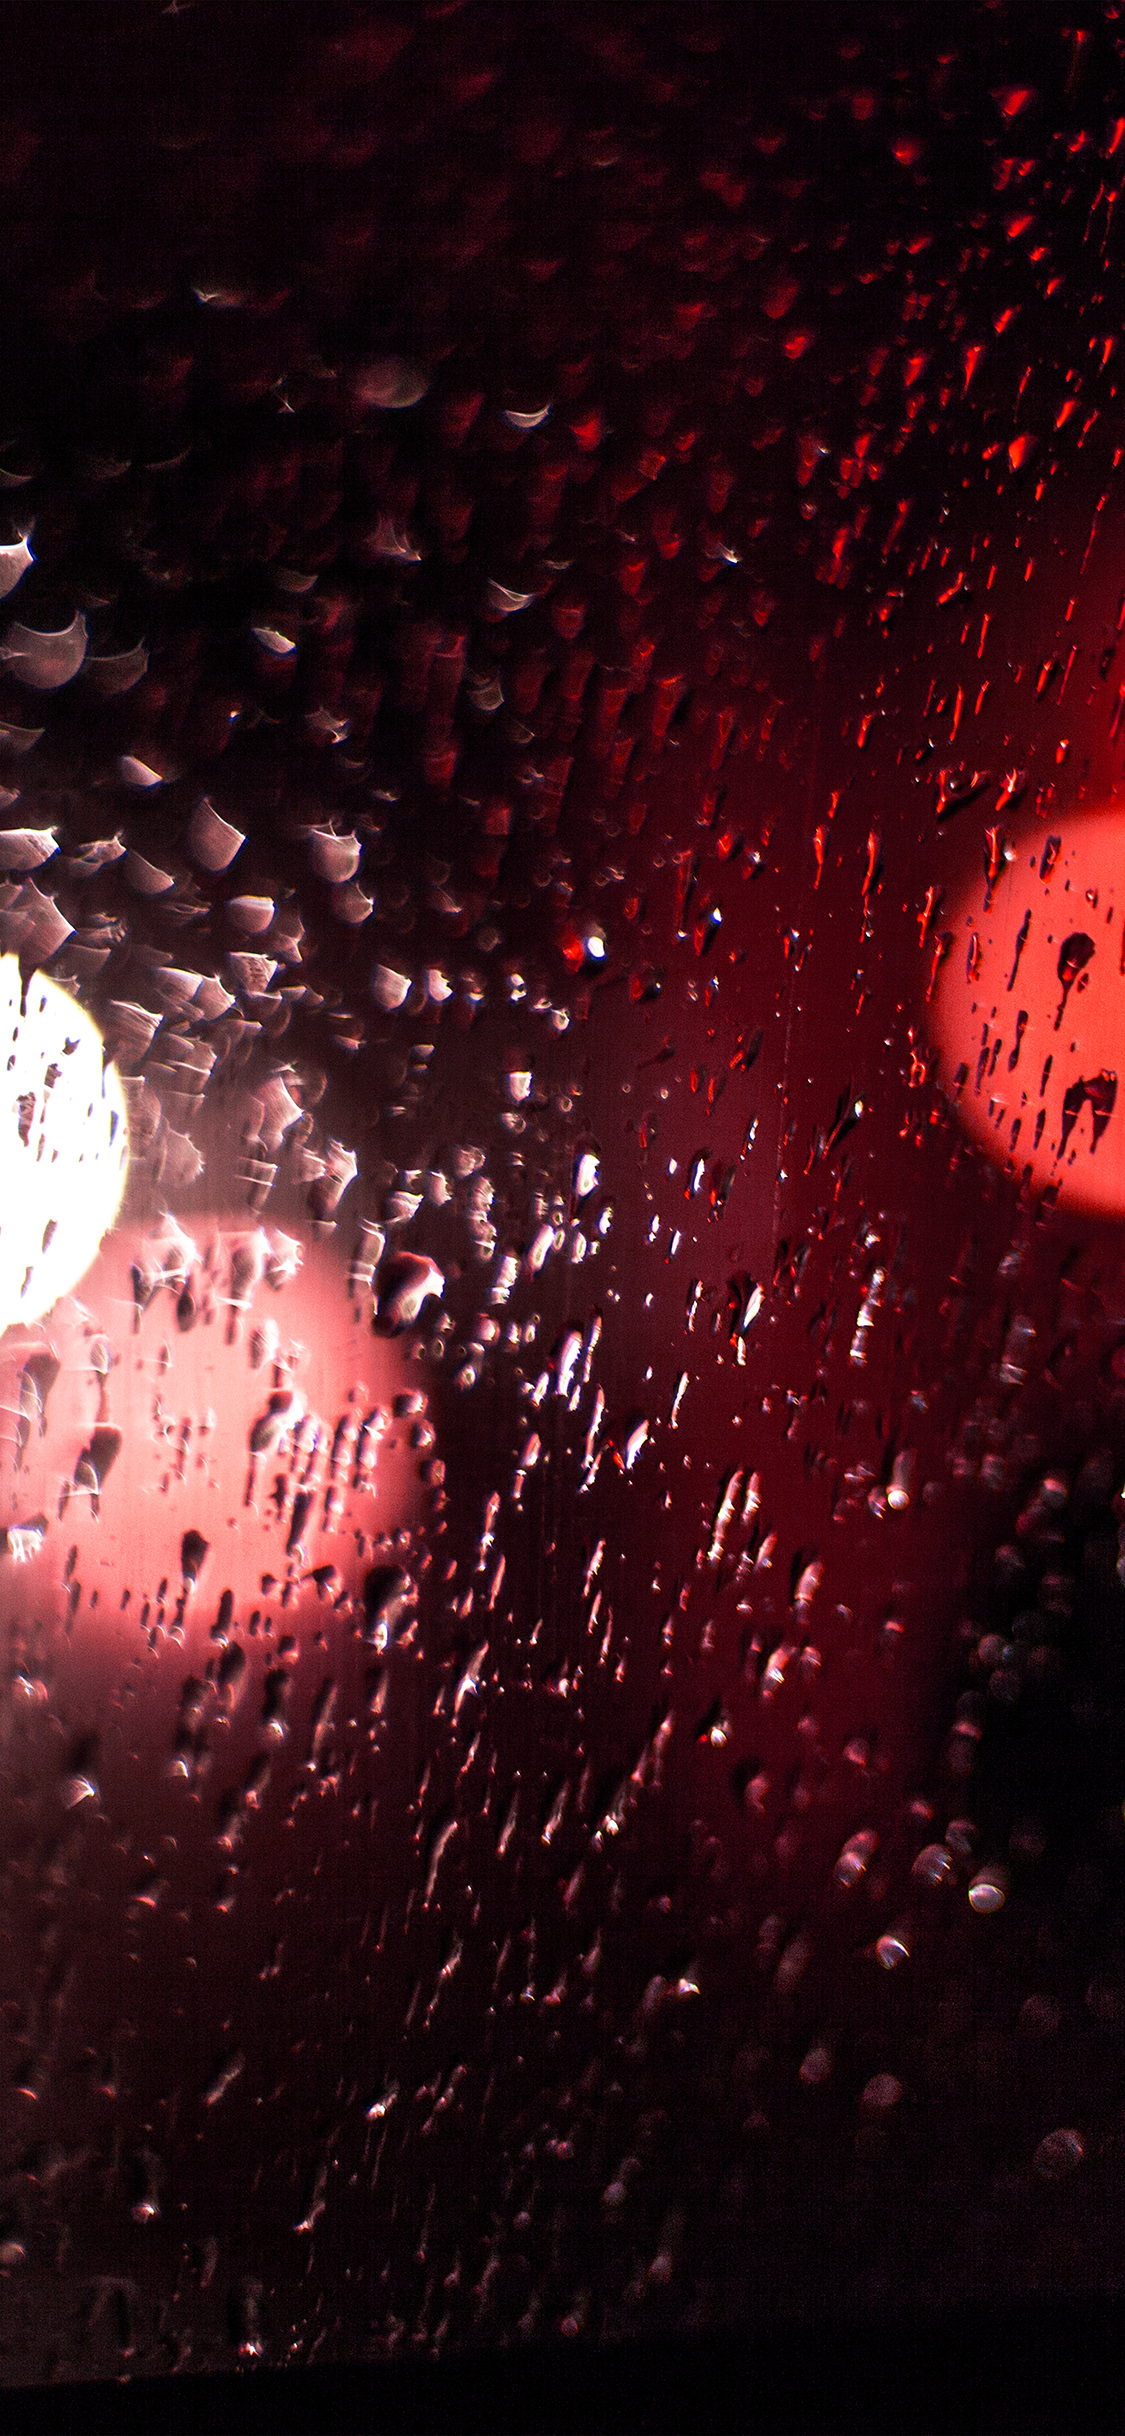 Rainy Fall Wallpaper Papers Co Iphone Wallpaper Vl44 Rainy Night Drops